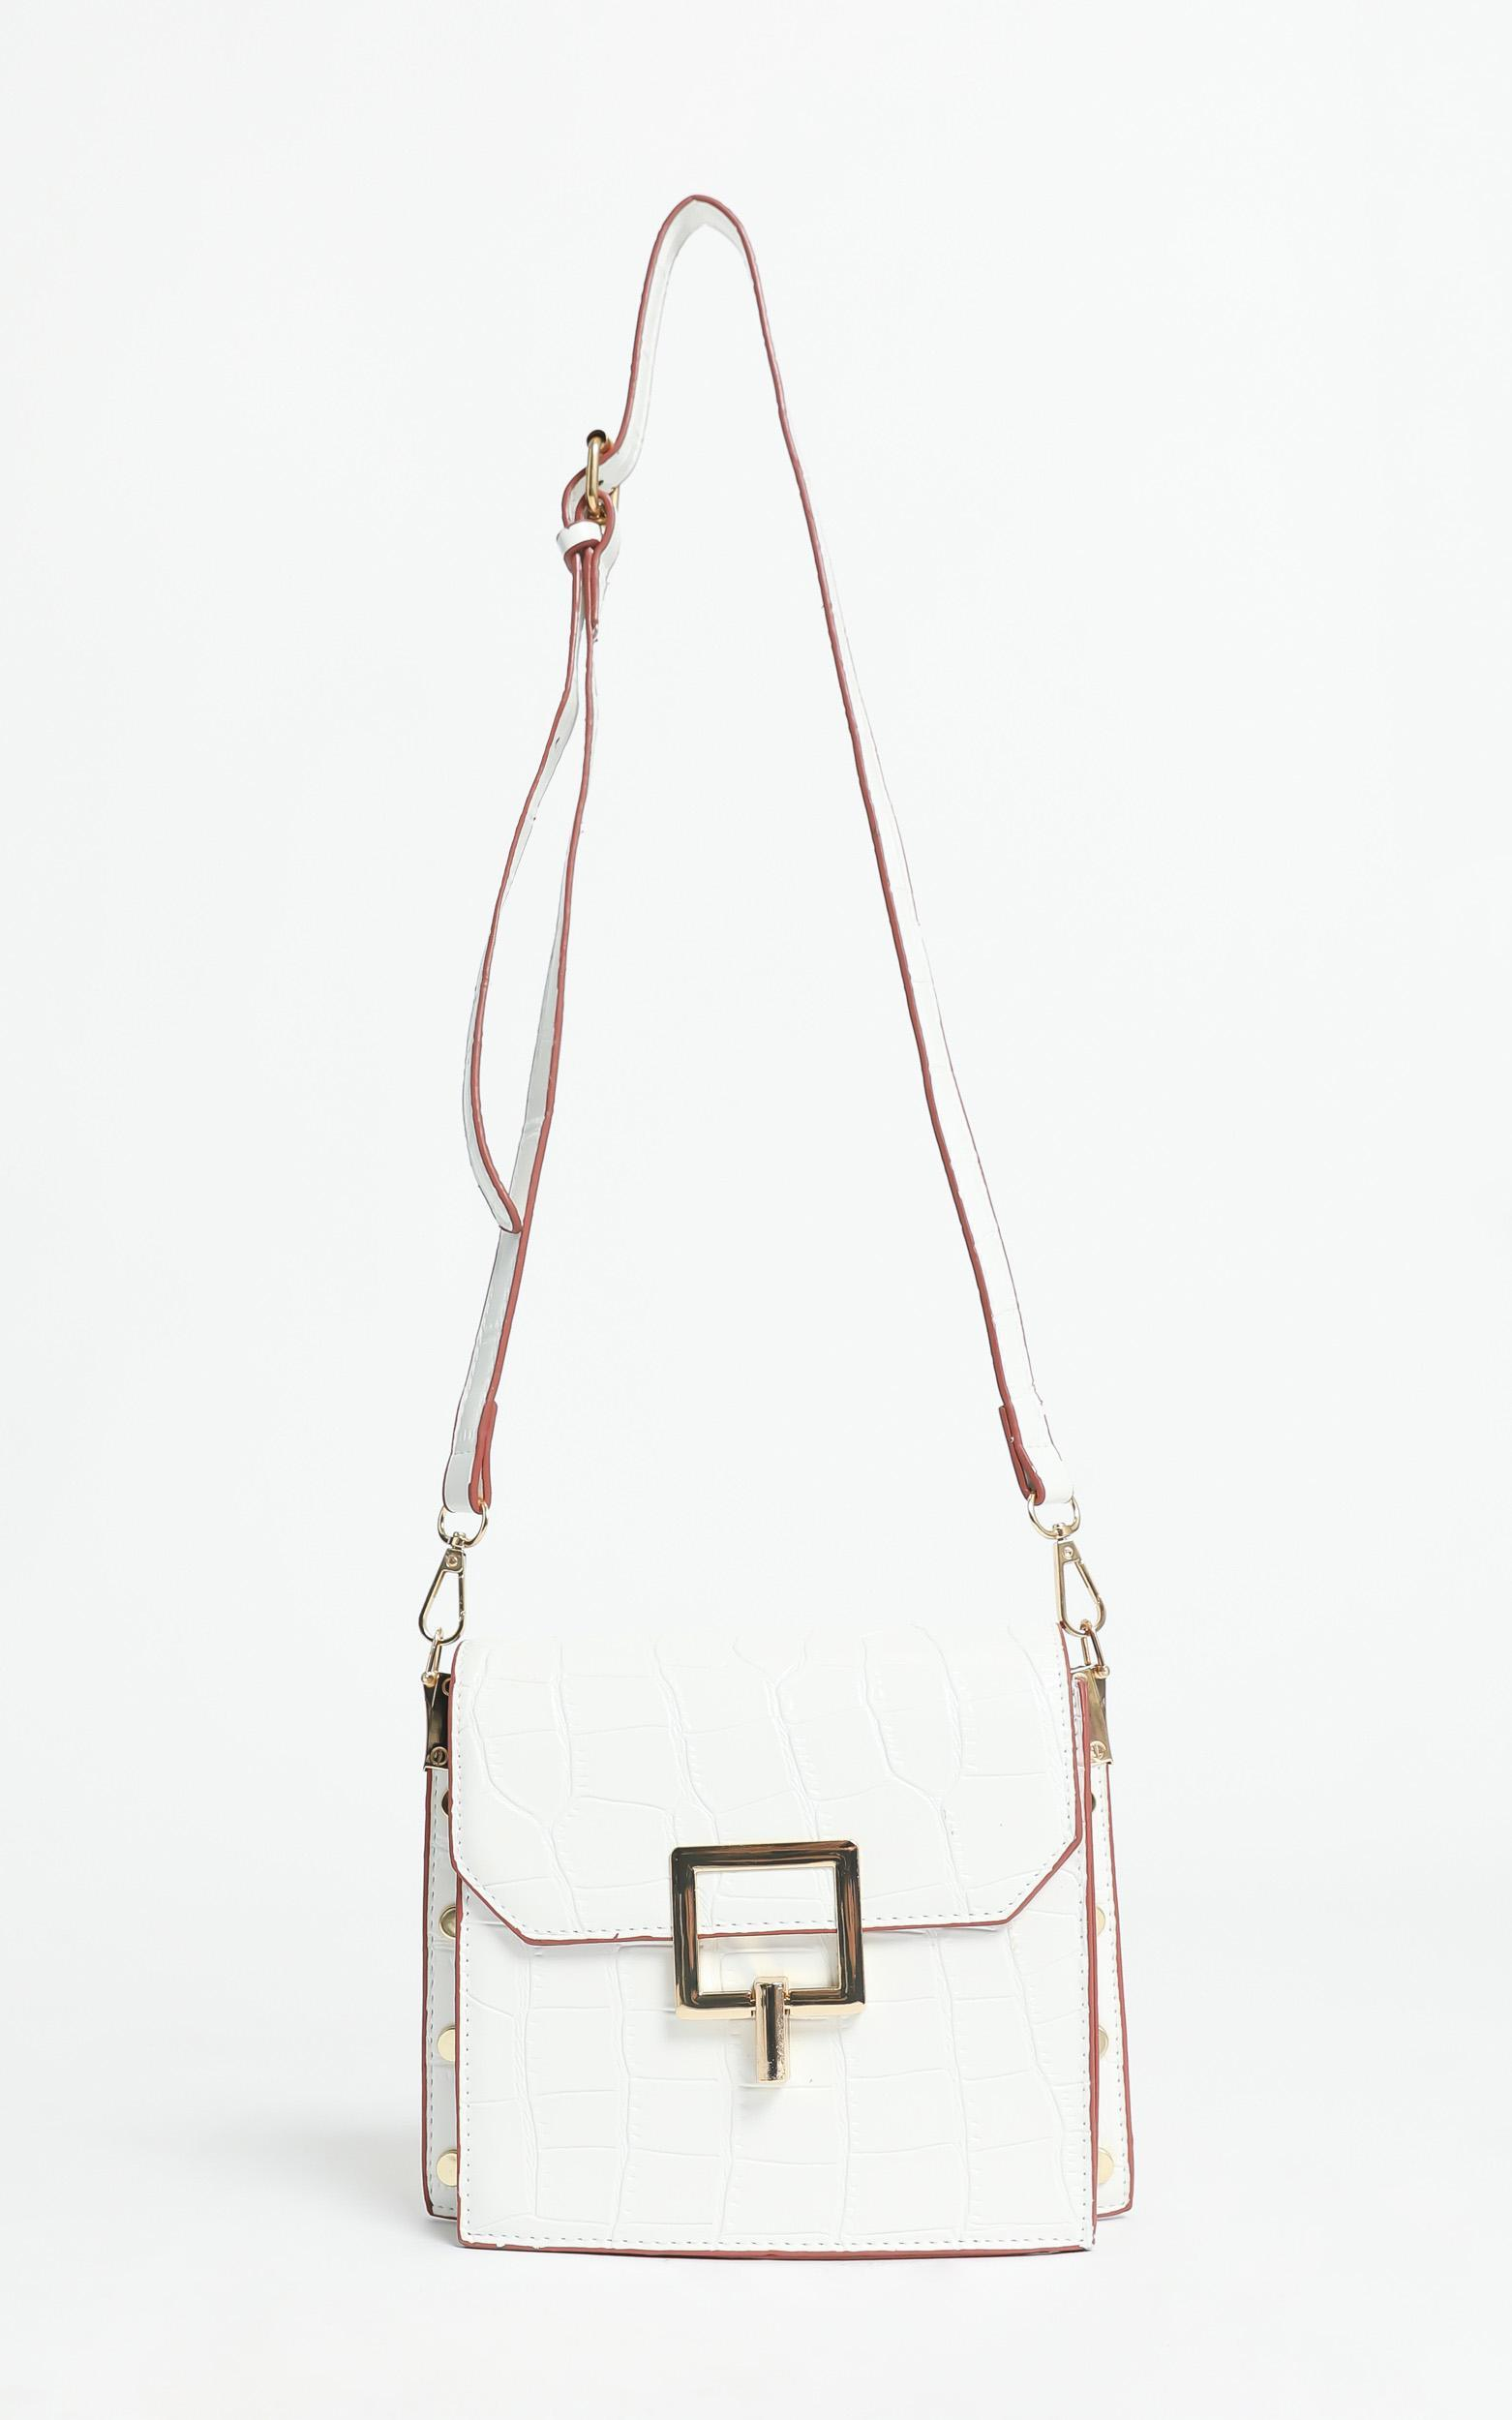 Valencia Bag in White, , hi-res image number null